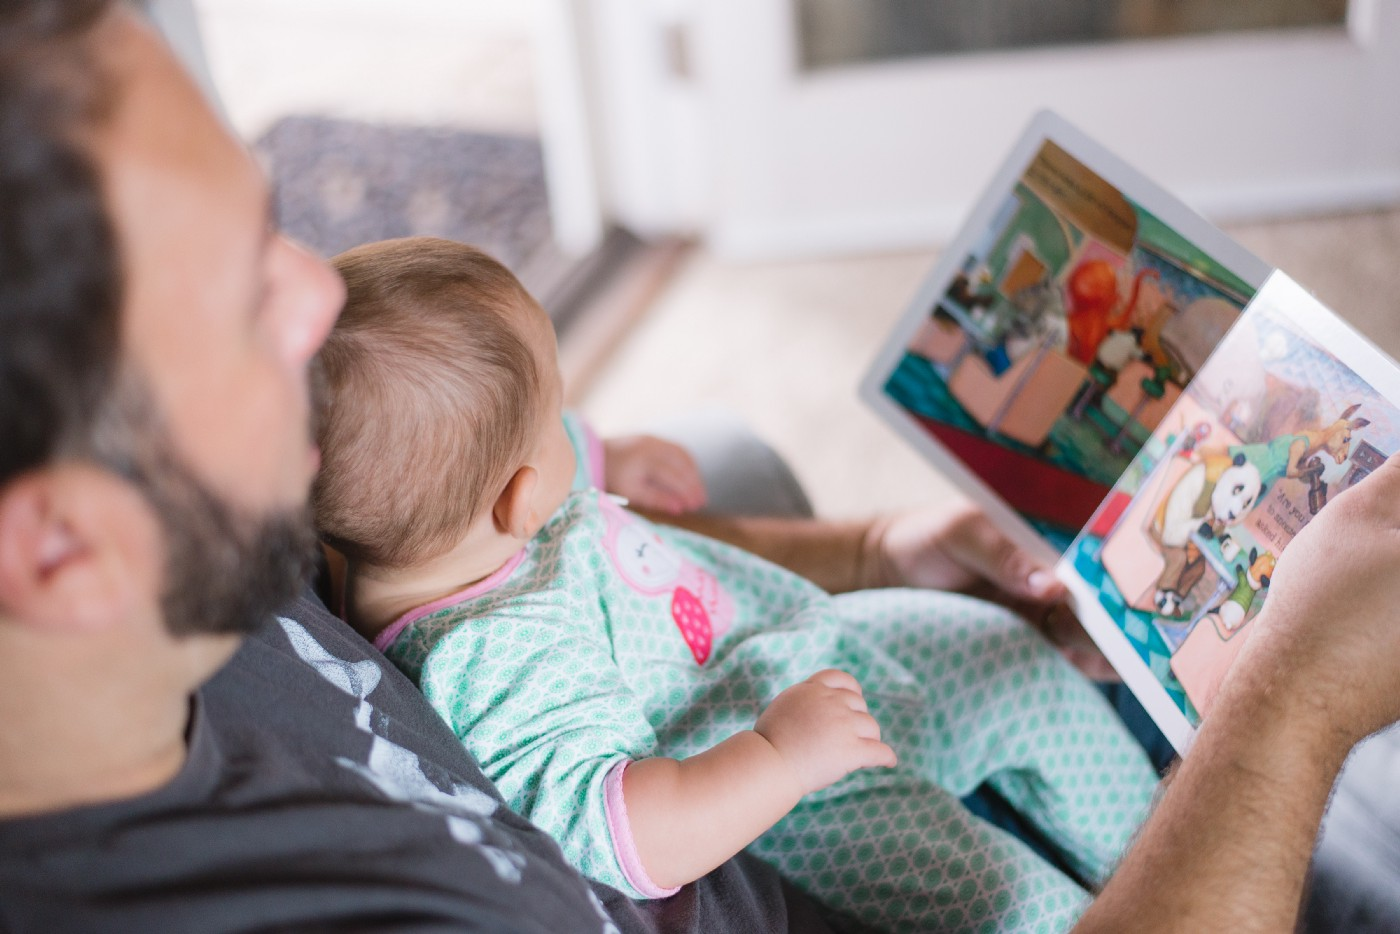 How Does Augmented Reality Improve Children's Books?